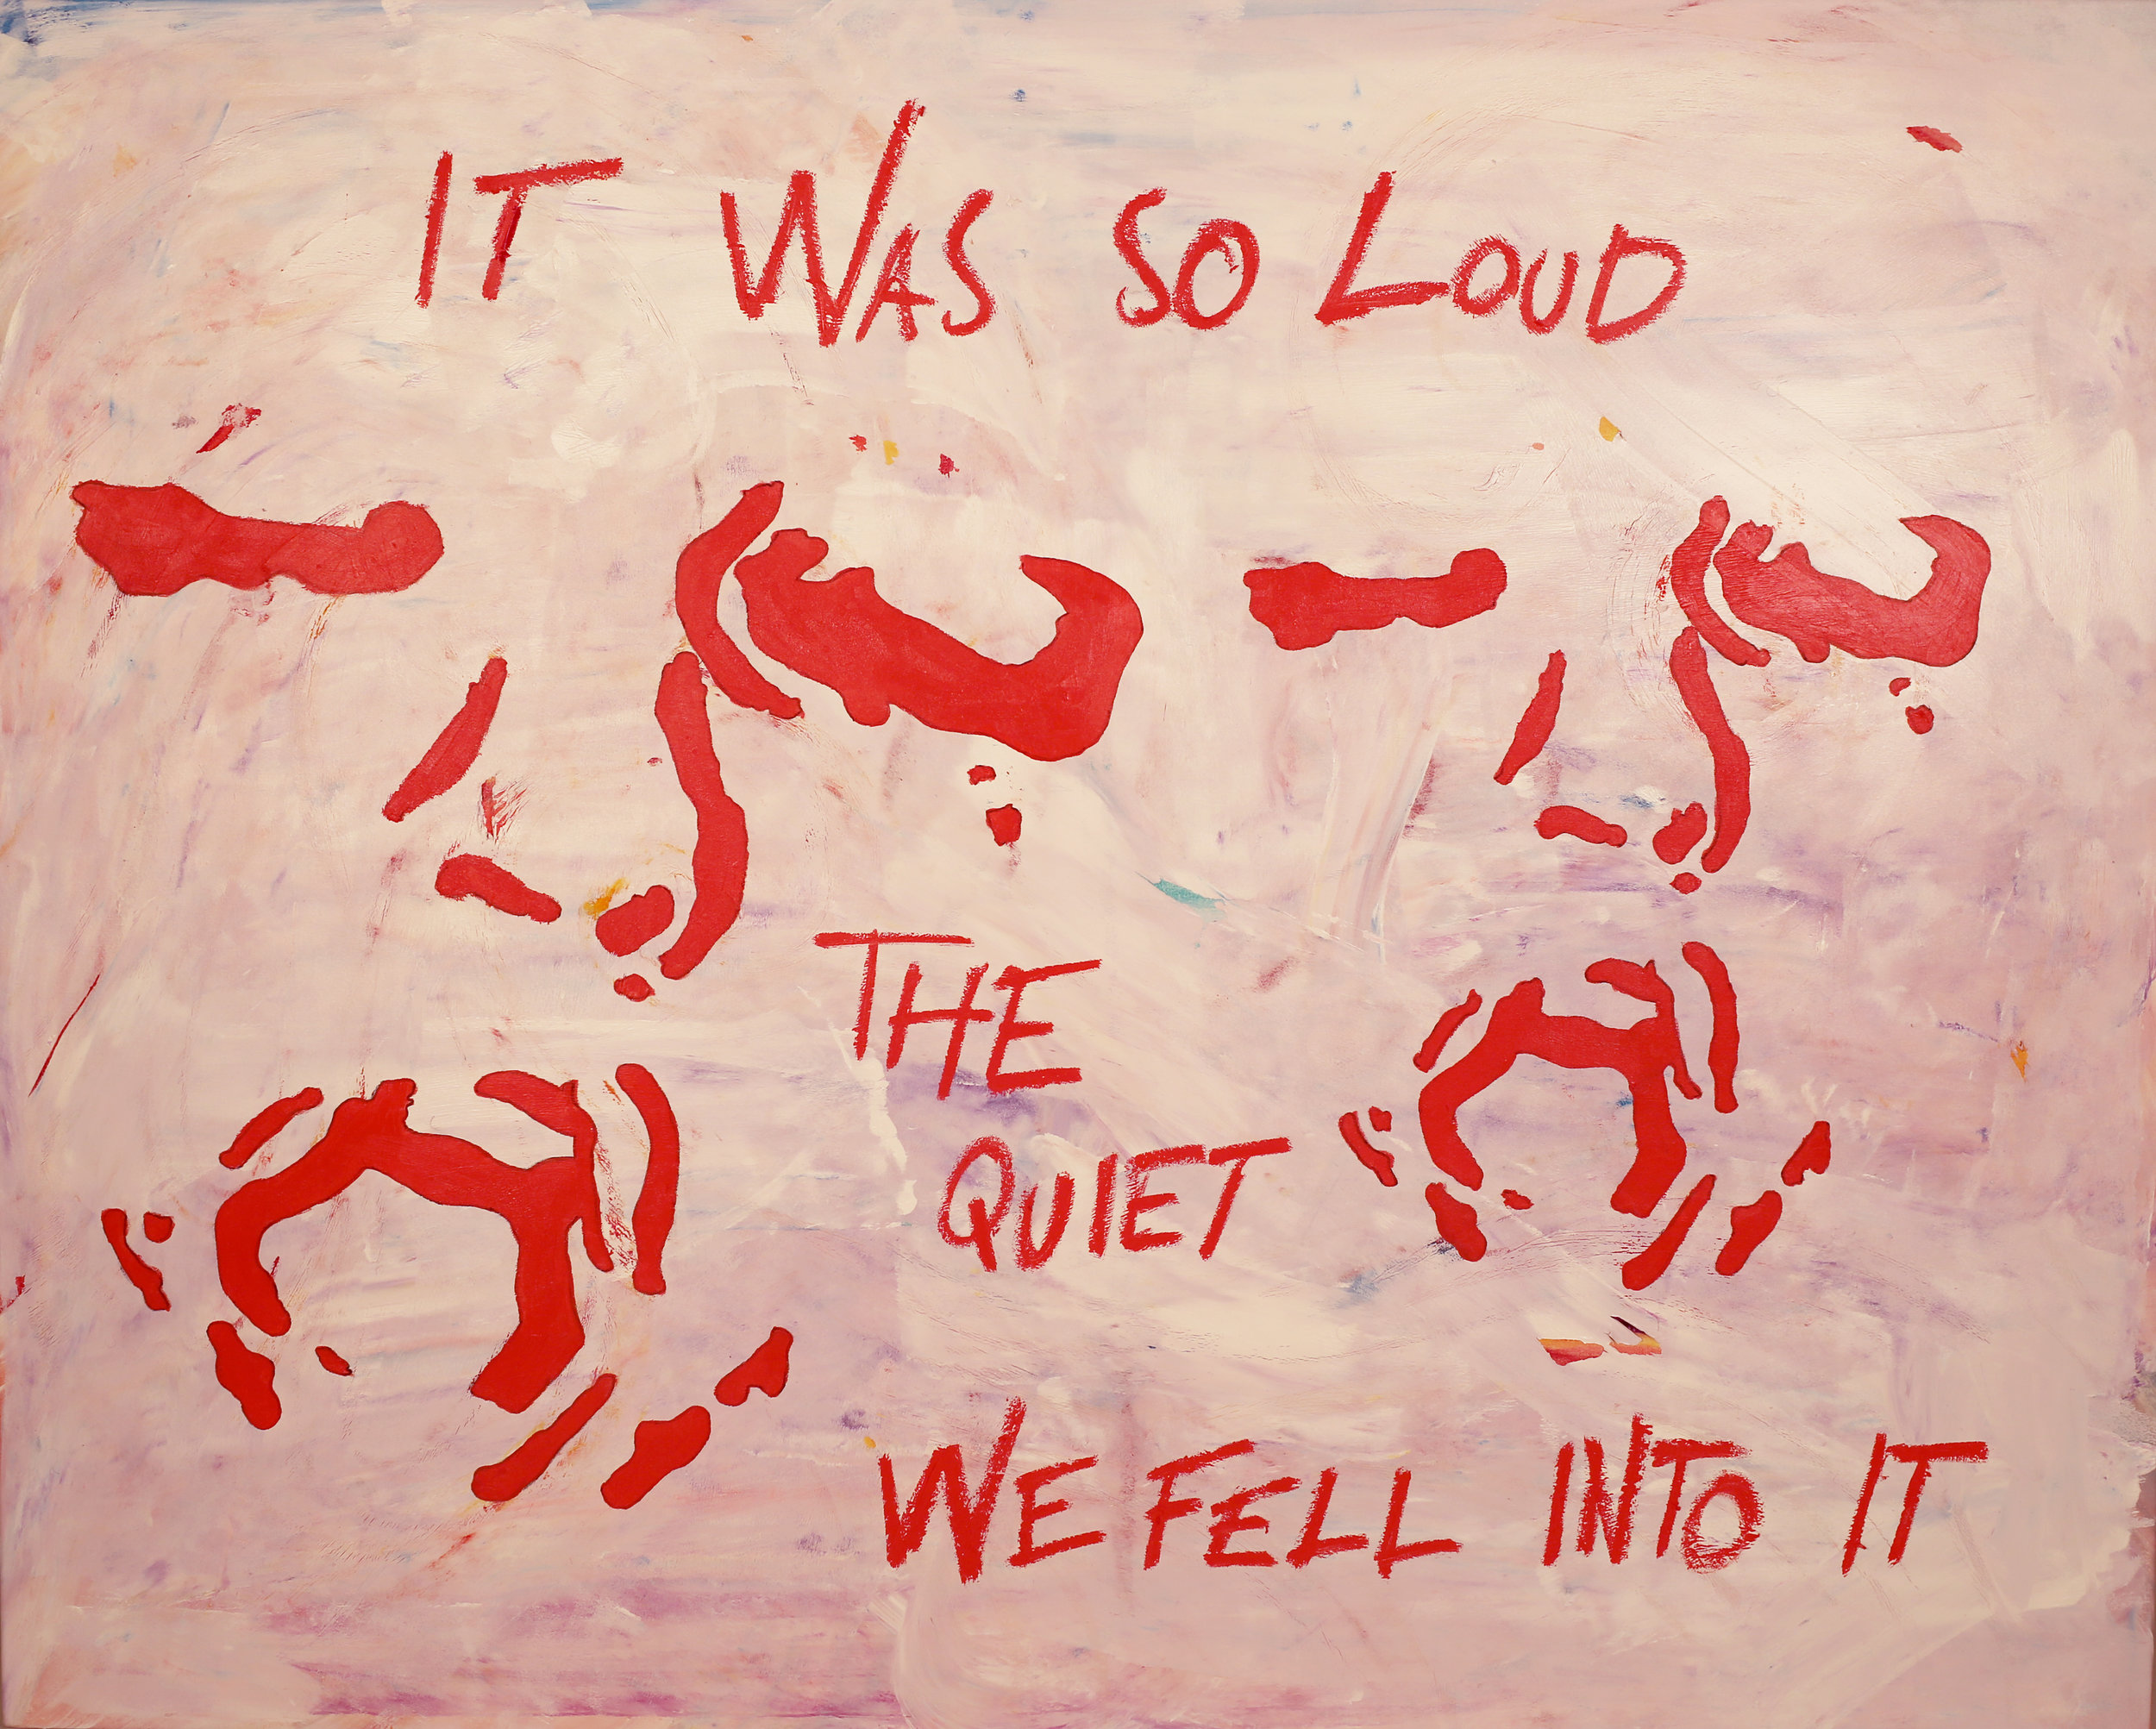 It was so loud.  Acrylic, oil on canvas. 48 x 60 x 1 ½ in. Executed in 2019.